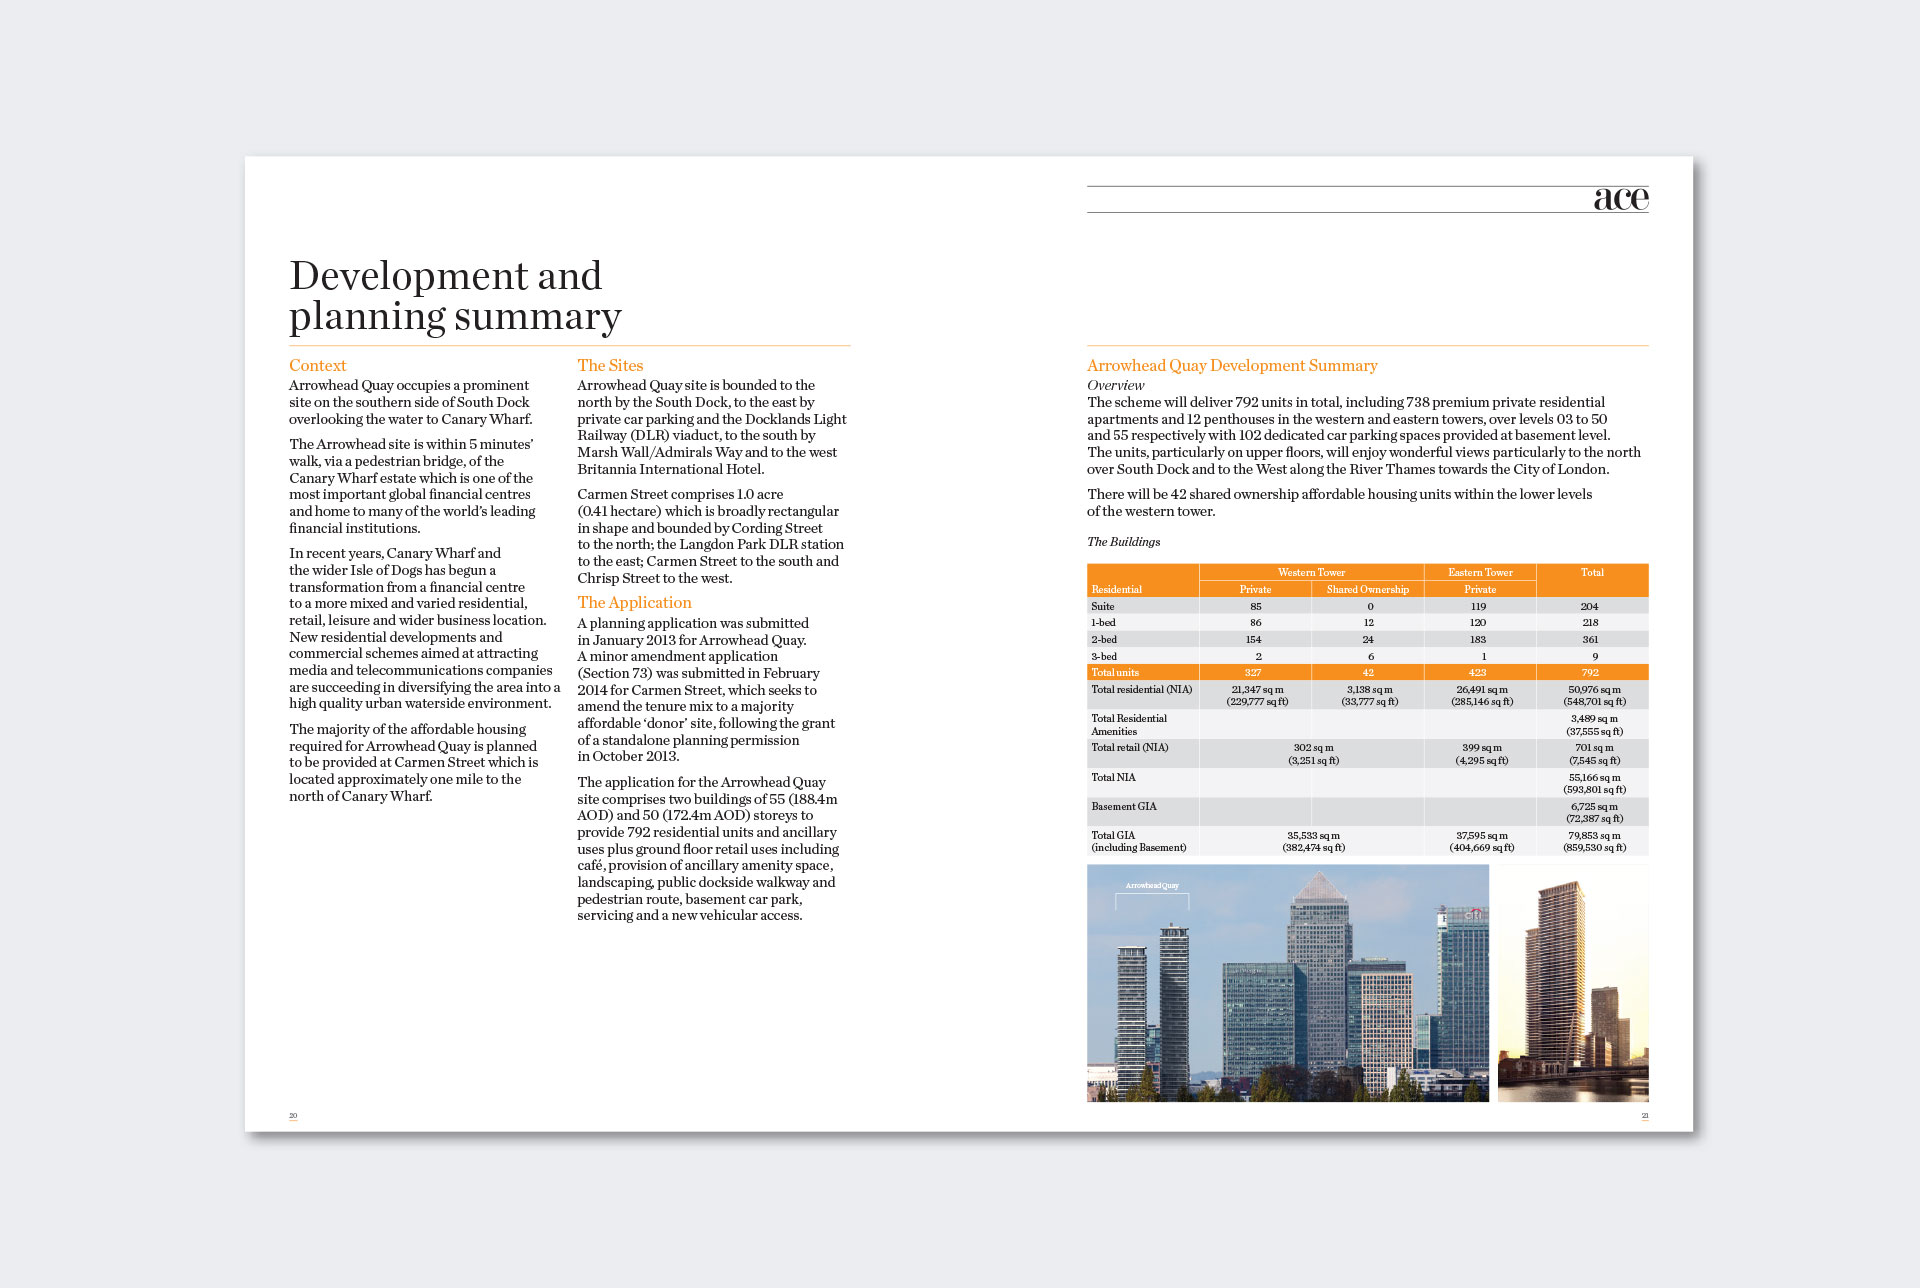 ace-investment-document-development-pages.jpg